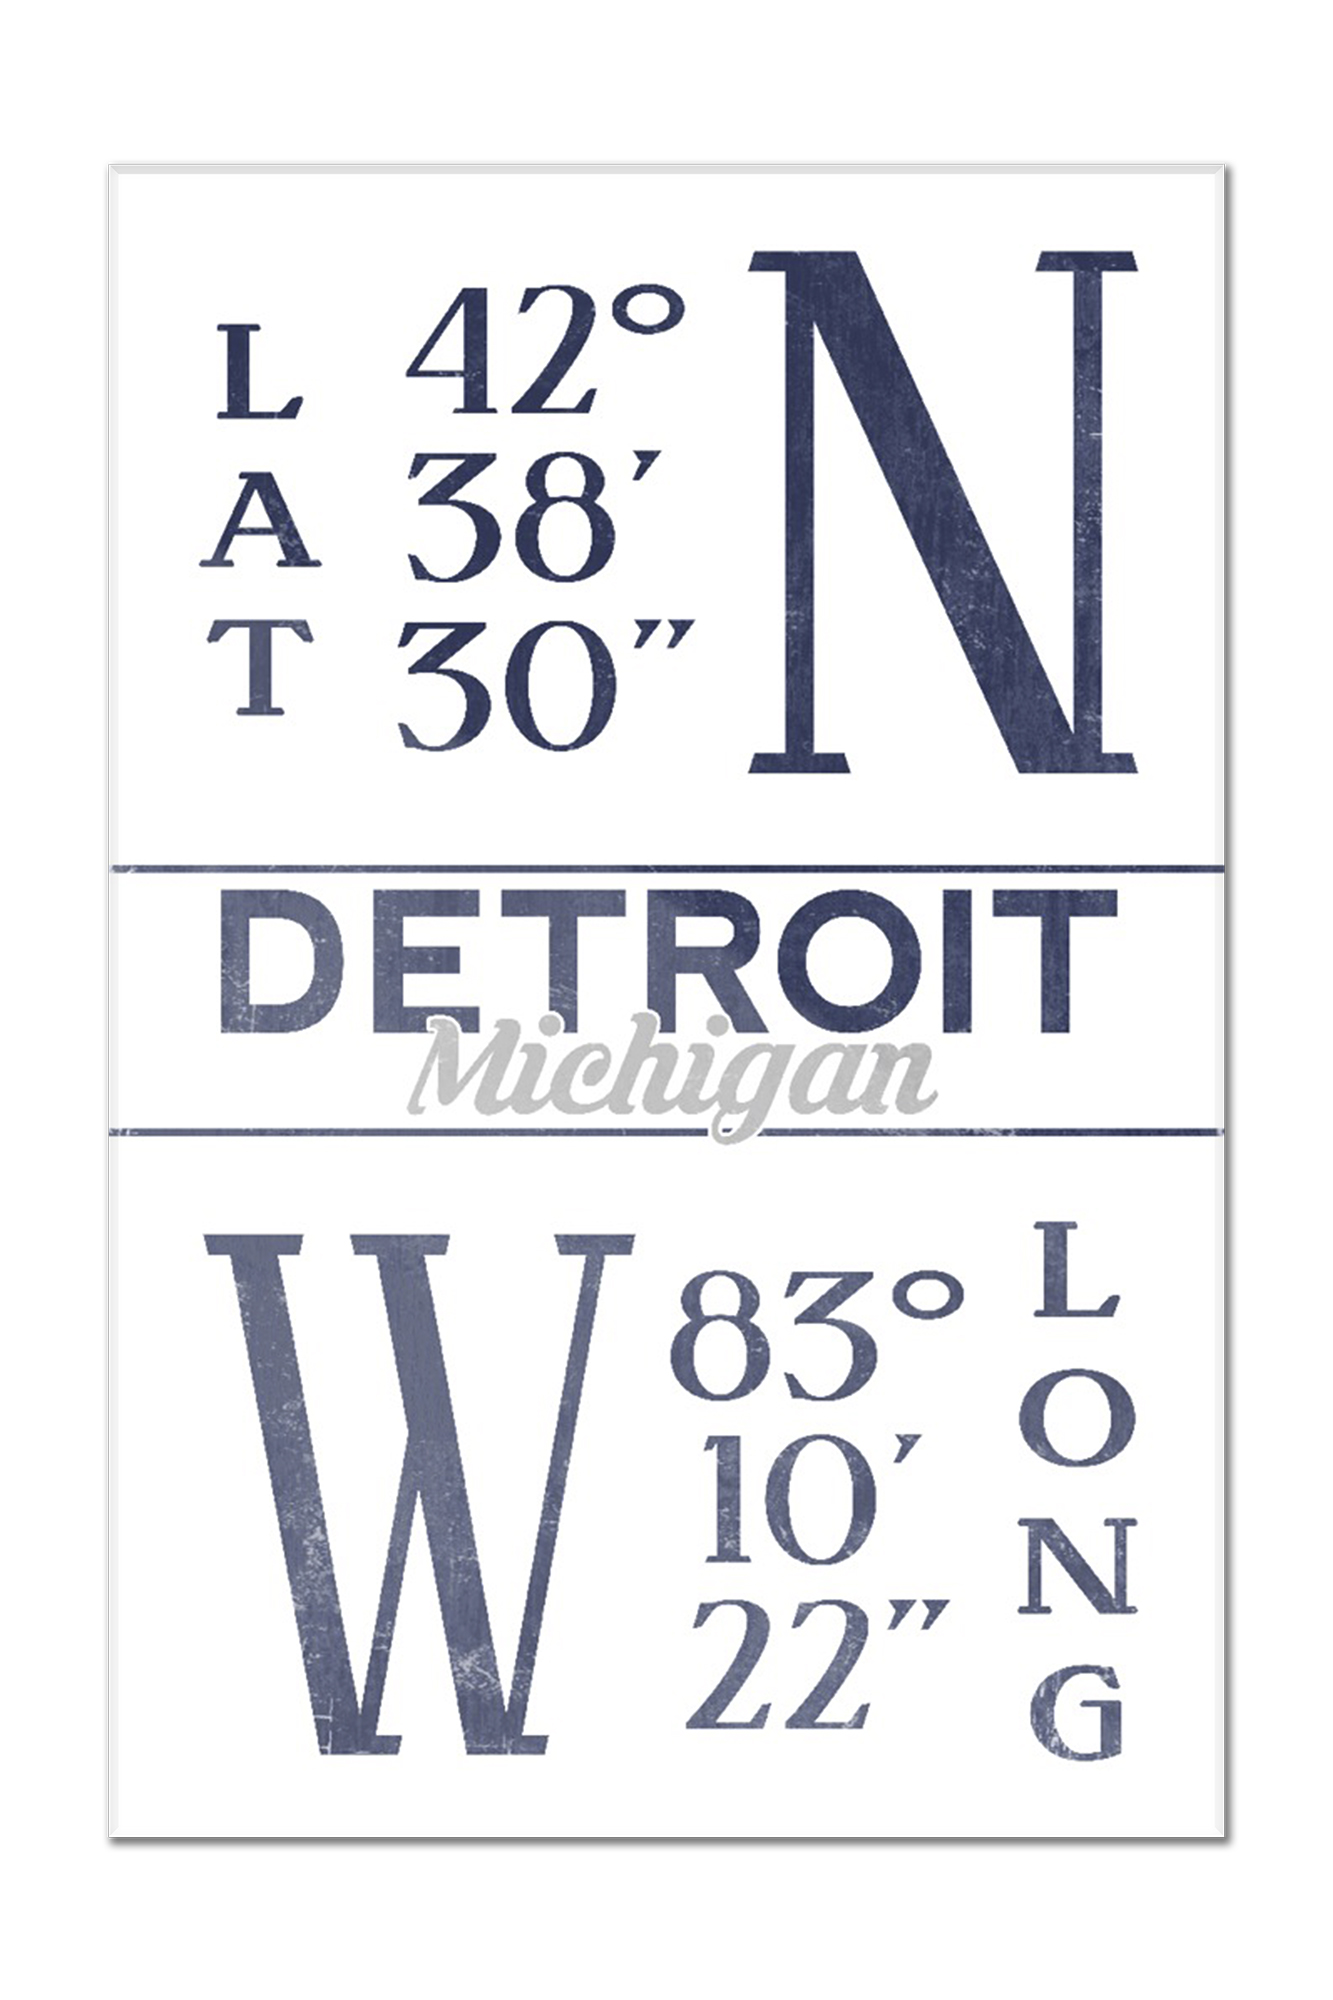 detroit michigan latitude longitude blue lantern press artwork 12x18 acrylic wall art gallery quality walmart com walmart com walmart com